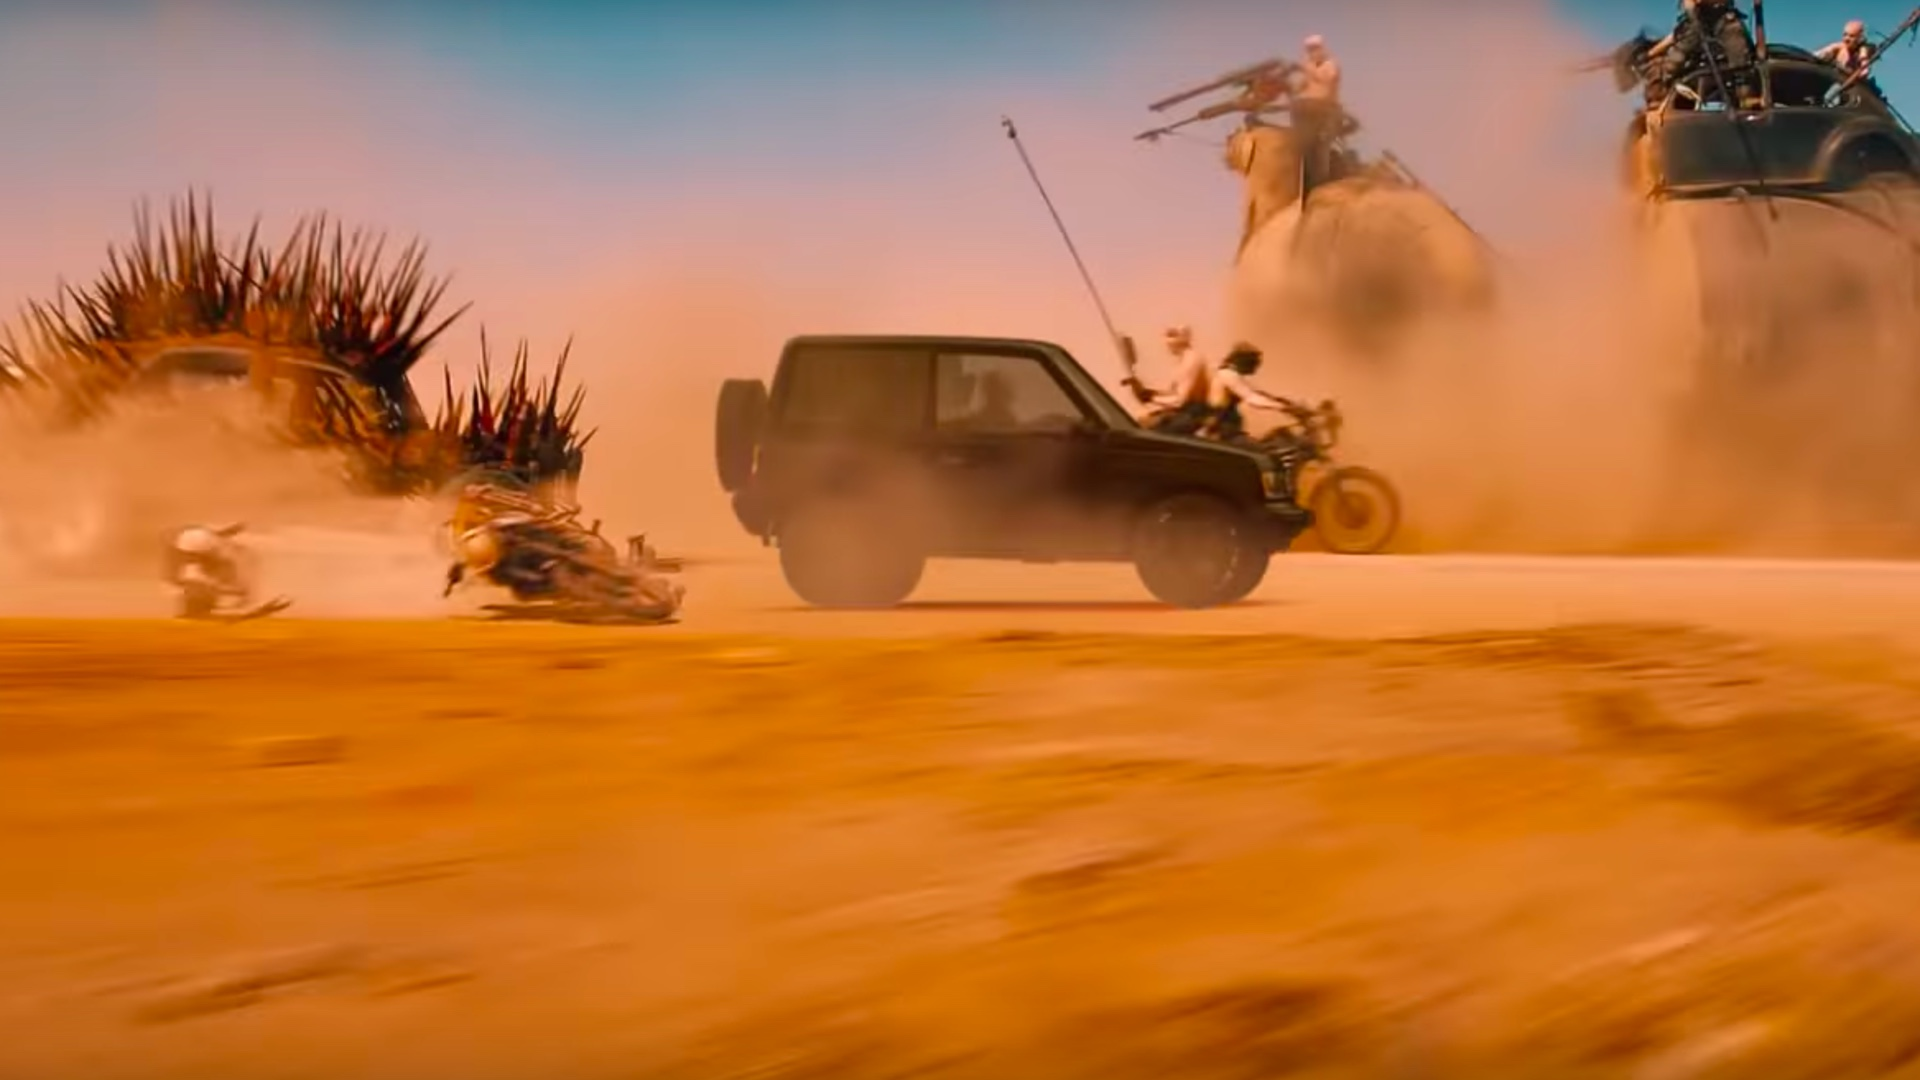 medium resolution of this has got to be the greatest video ad ever created for a used car it was created by visual effects artist eugene romanovsky and he made it to help sell